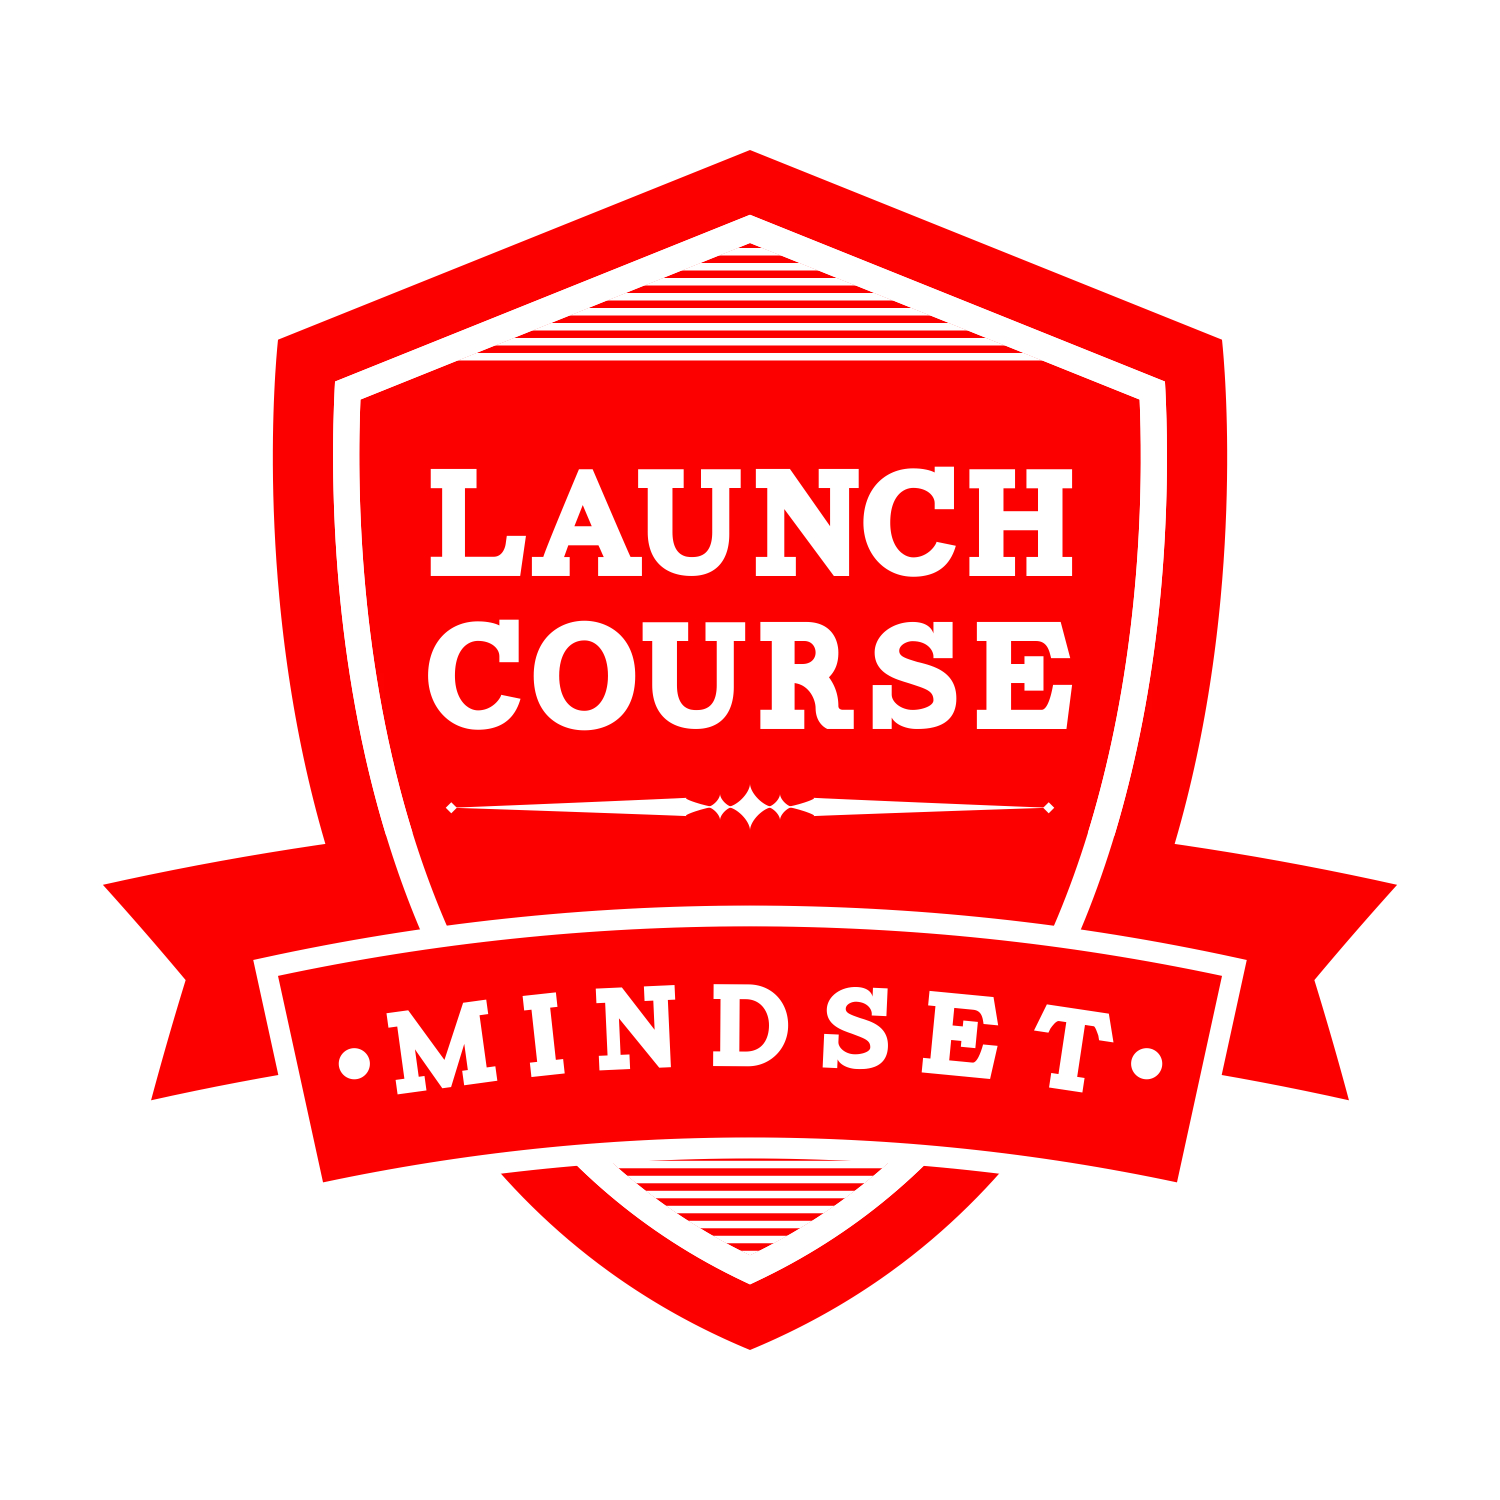 Launch Course